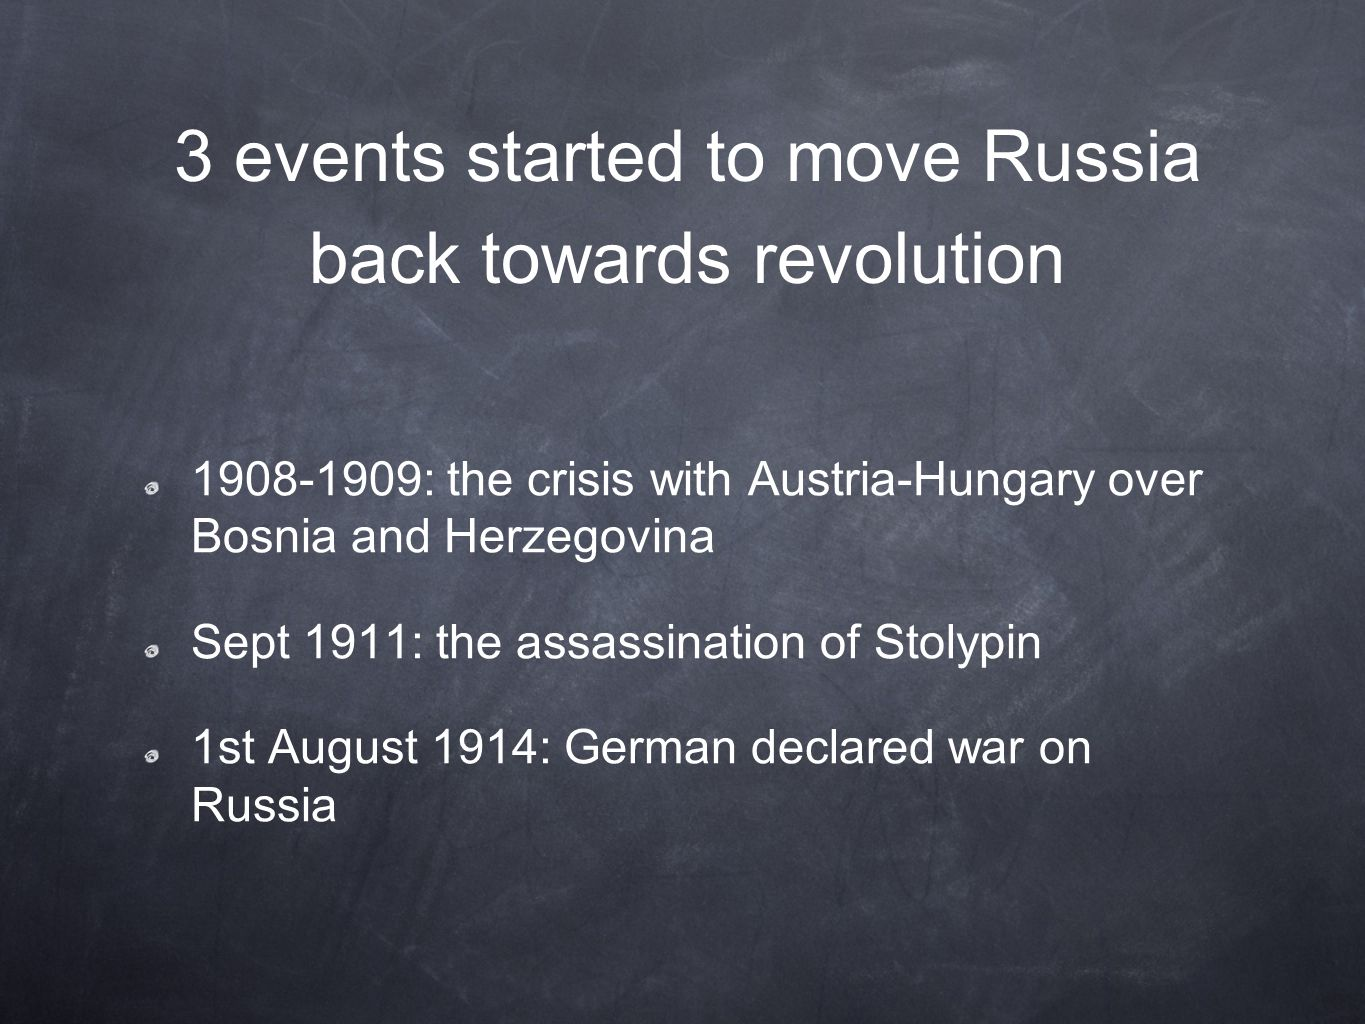 3 events started to move Russia back towards revolution 1908-1909: the crisis with Austria-Hungary over Bosnia and Herzegovina Sept 1911: the assassination of Stolypin 1st August 1914: German declared war on Russia